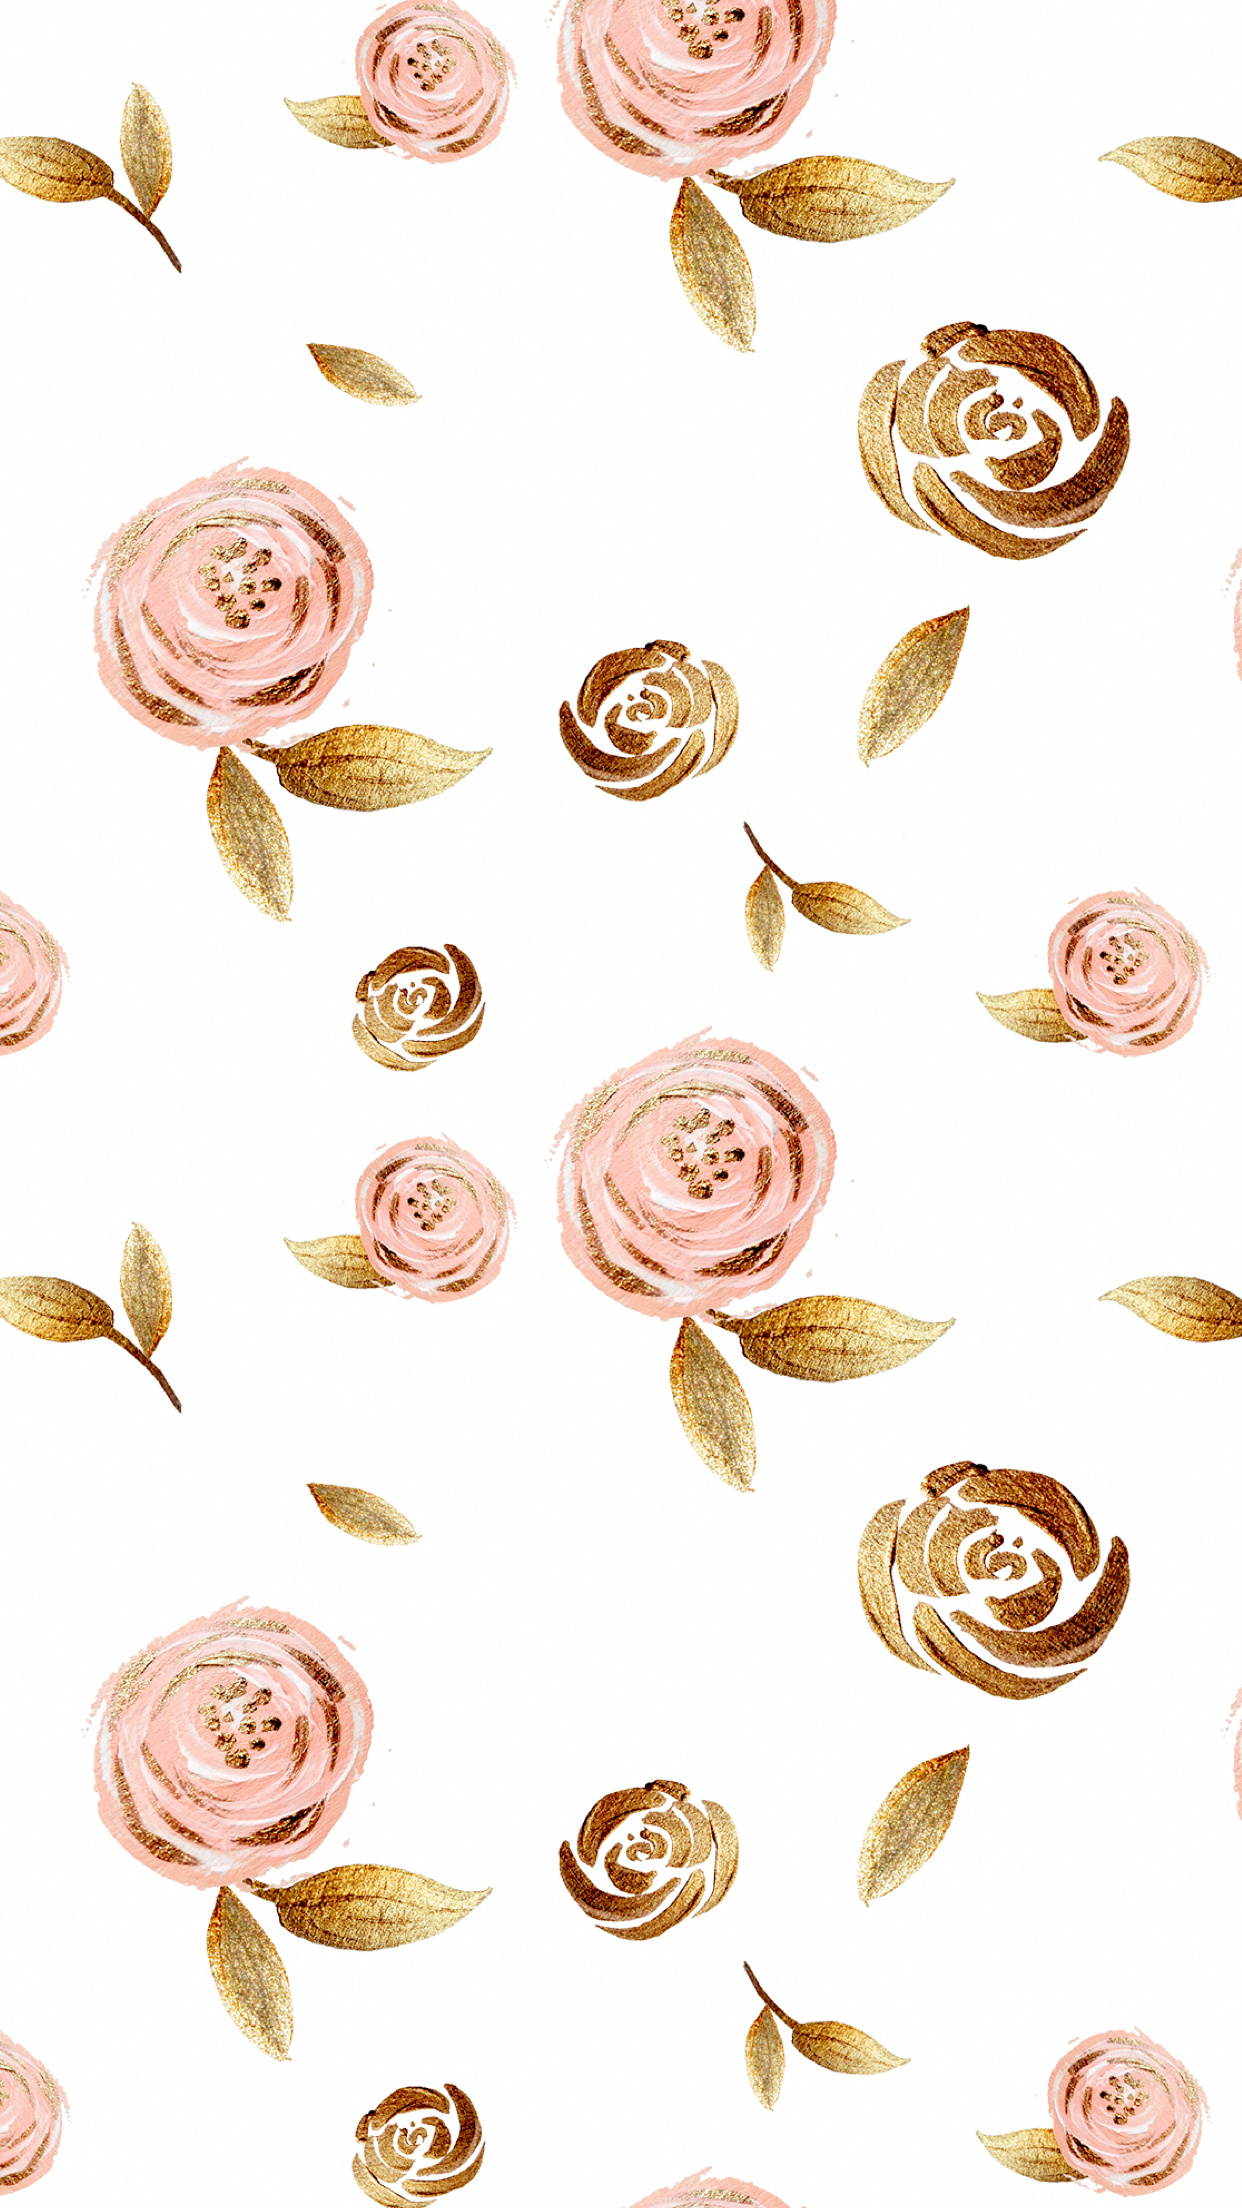 37 Cute Rose Gold Backgrounds Refreshing Pictures In 2020 Gold Wallpaper Iphone Rose Gold Wallpaper Rose Gold Wallpaper Iphone